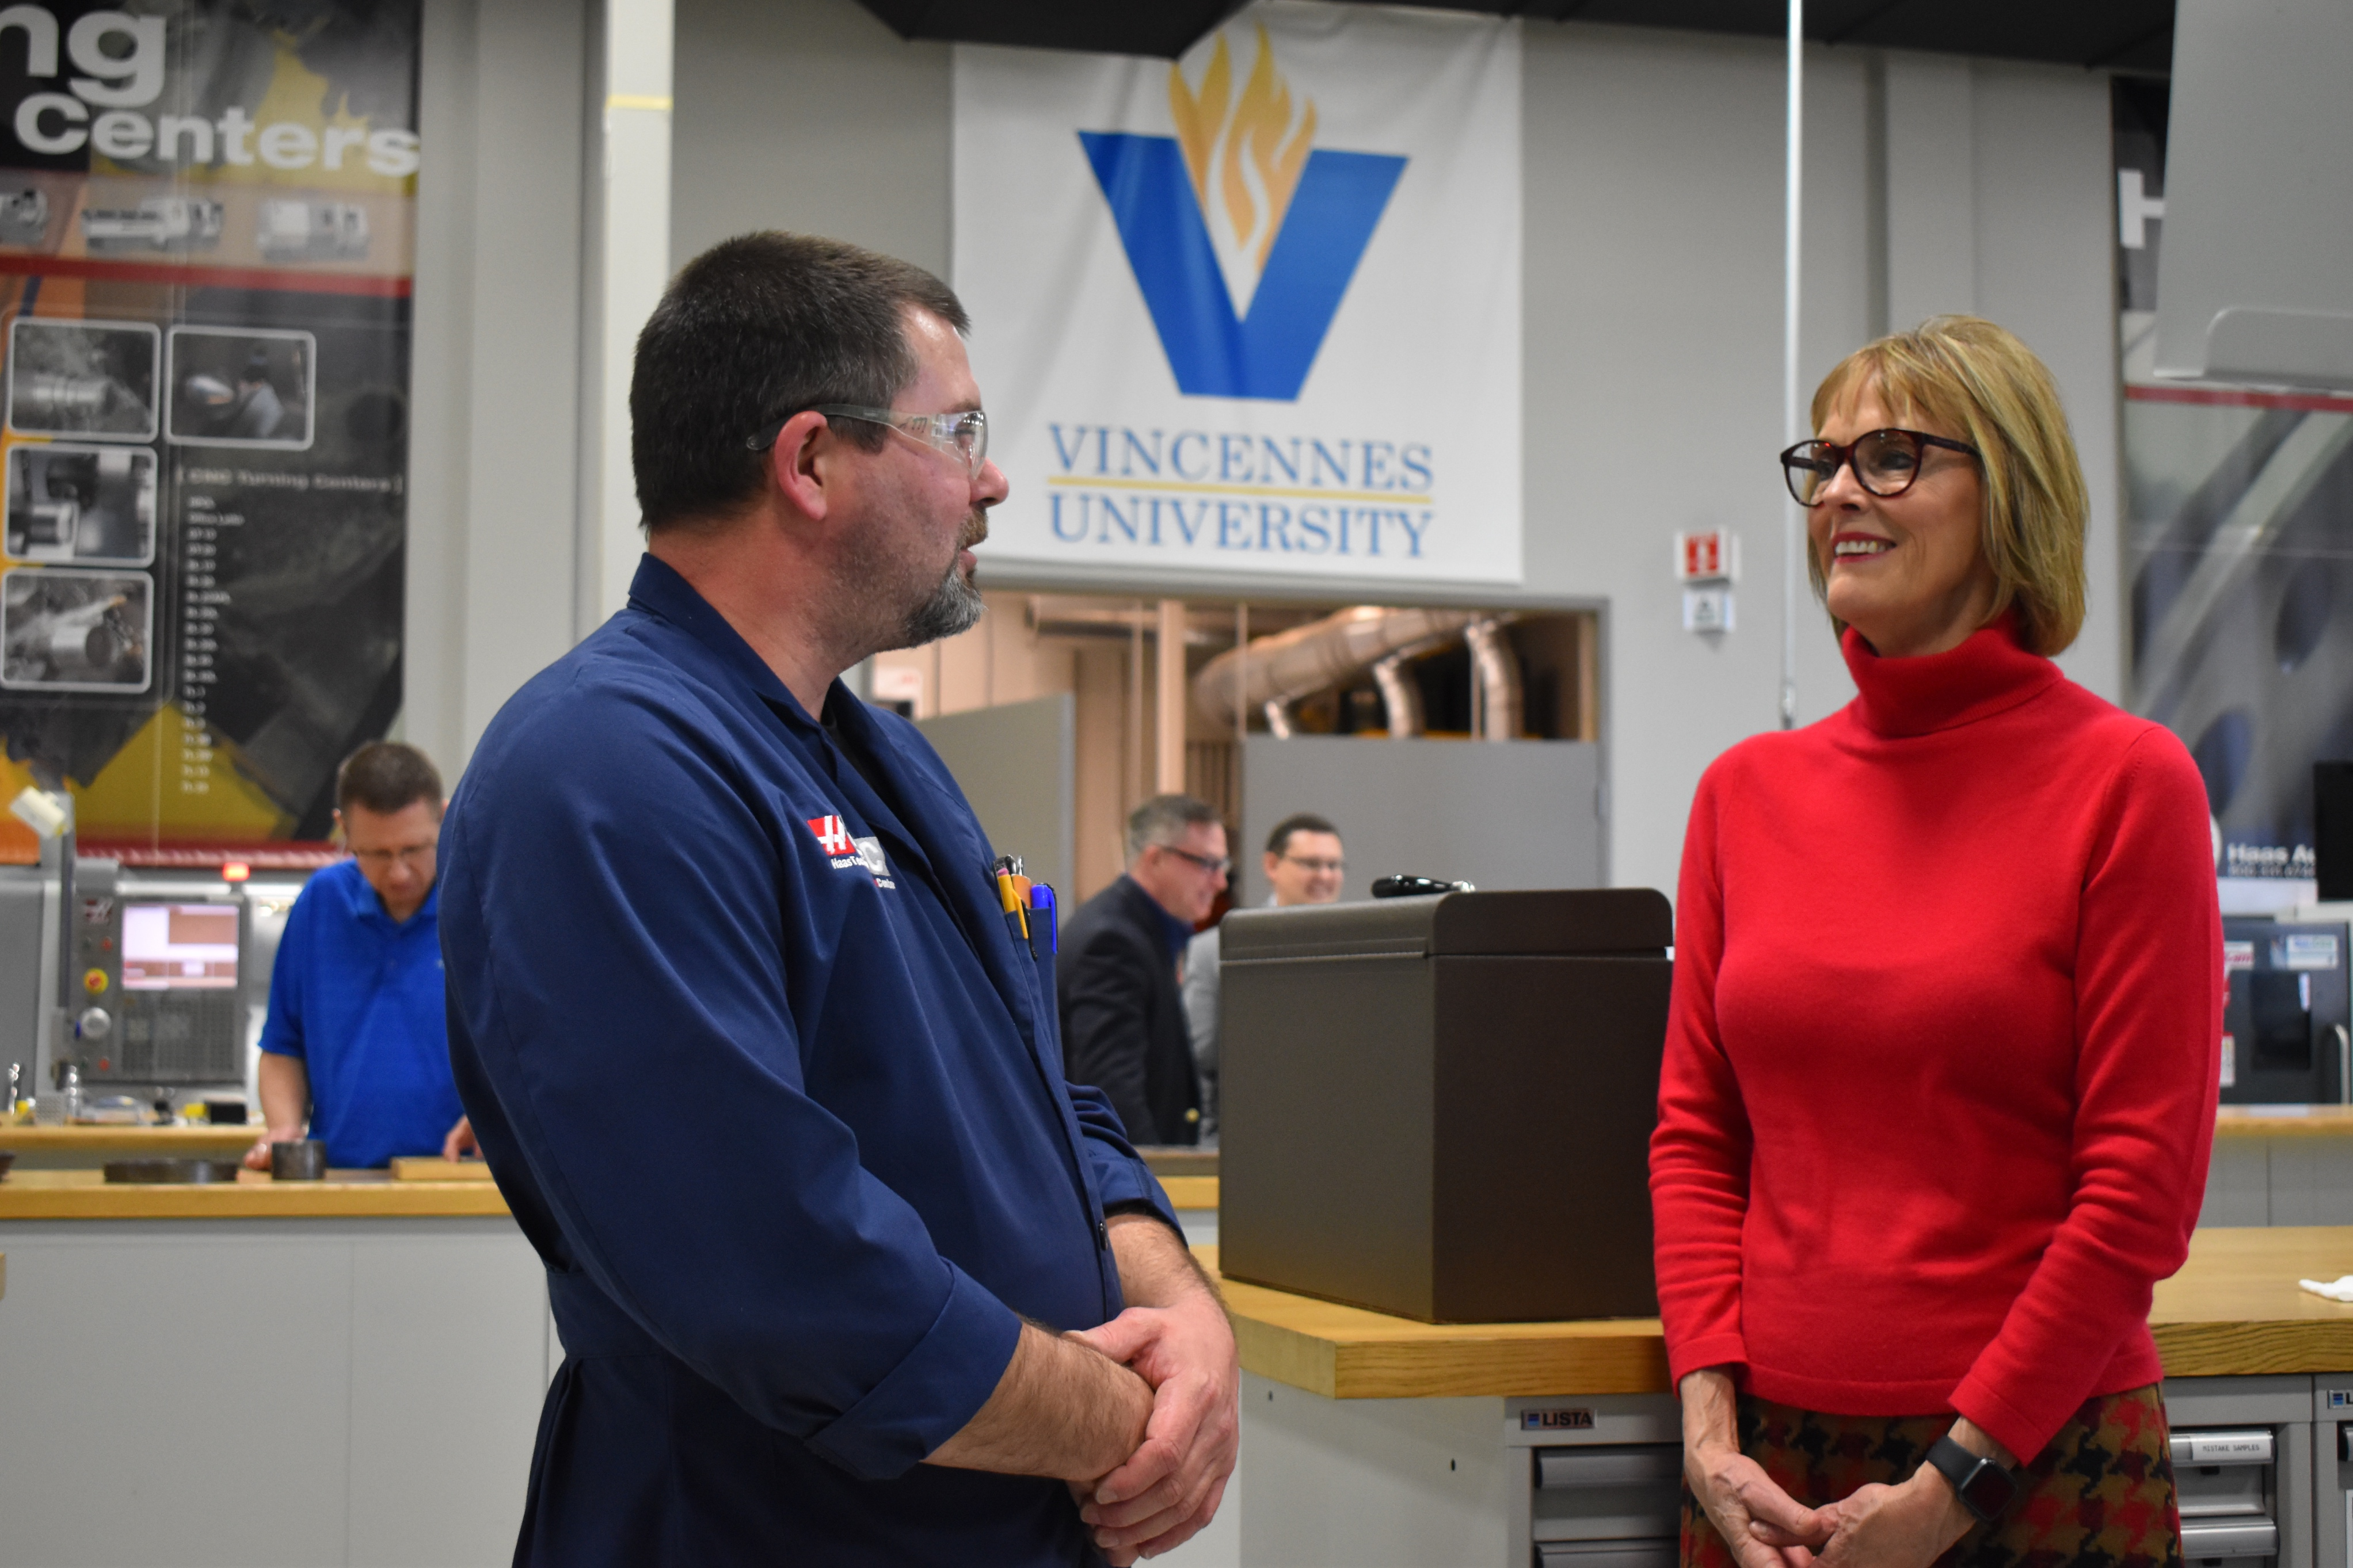 Indiana Lt. Governor praises Vincennes University's role in educating a 21st Century workforce